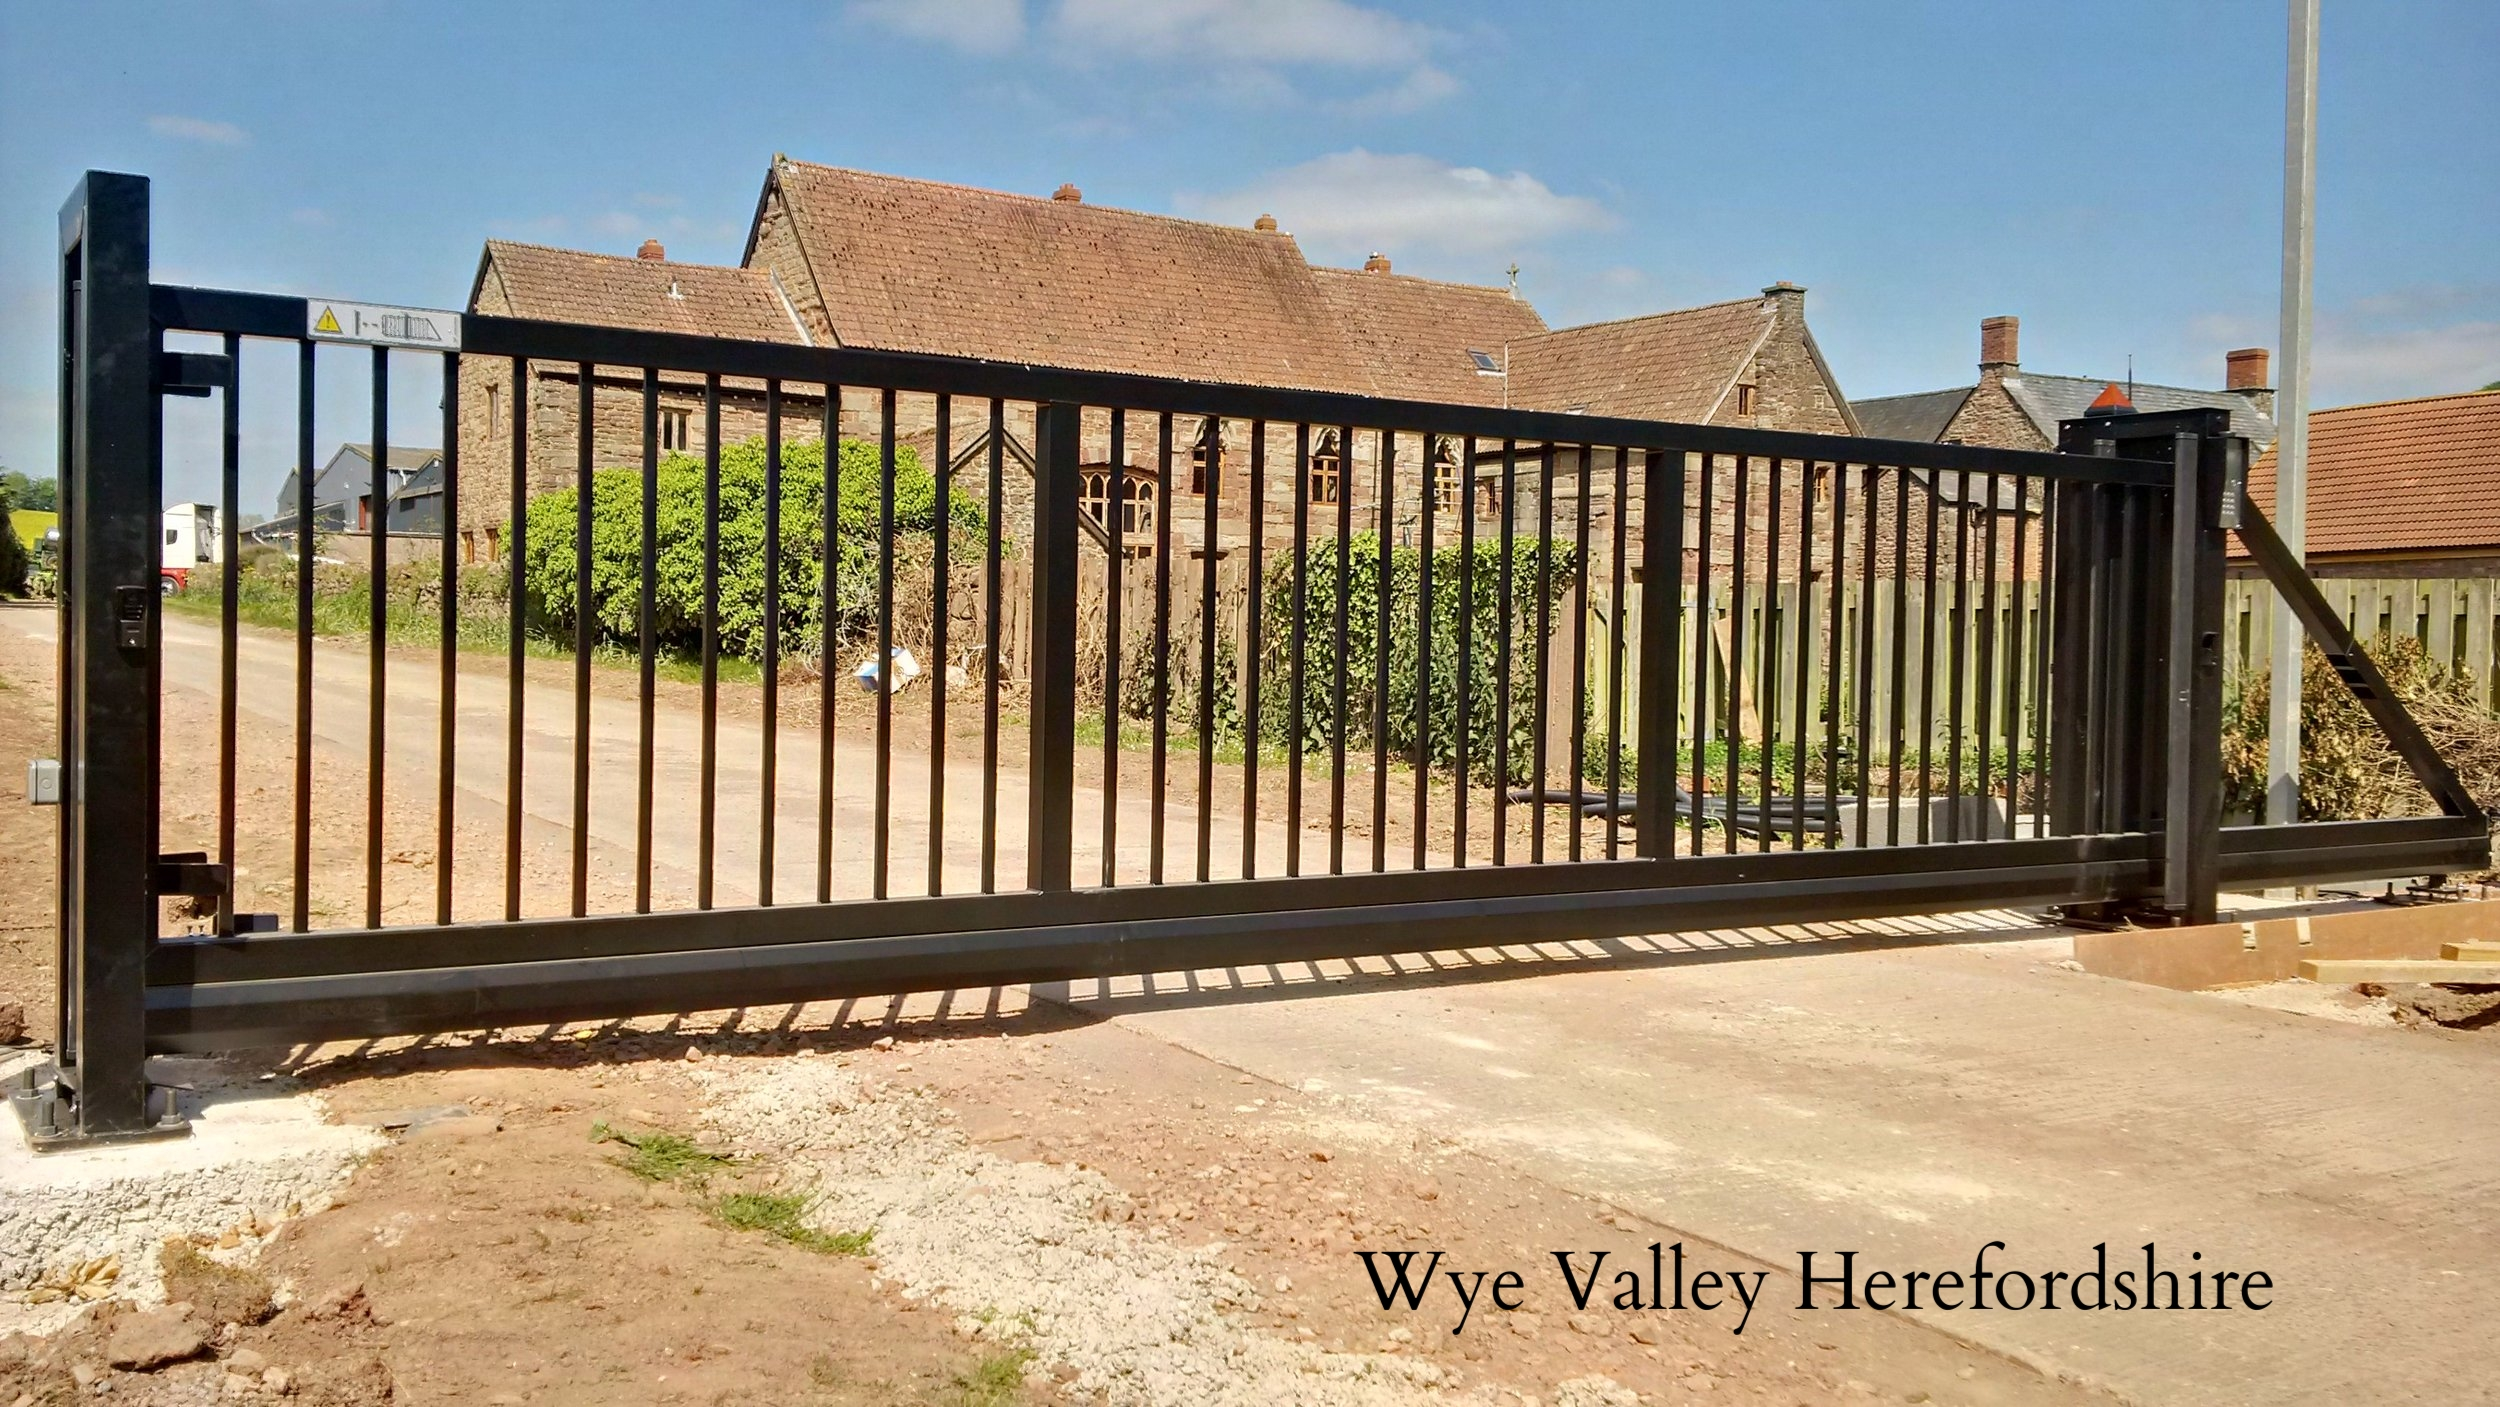 Copy of Wye Valley Herefordshire